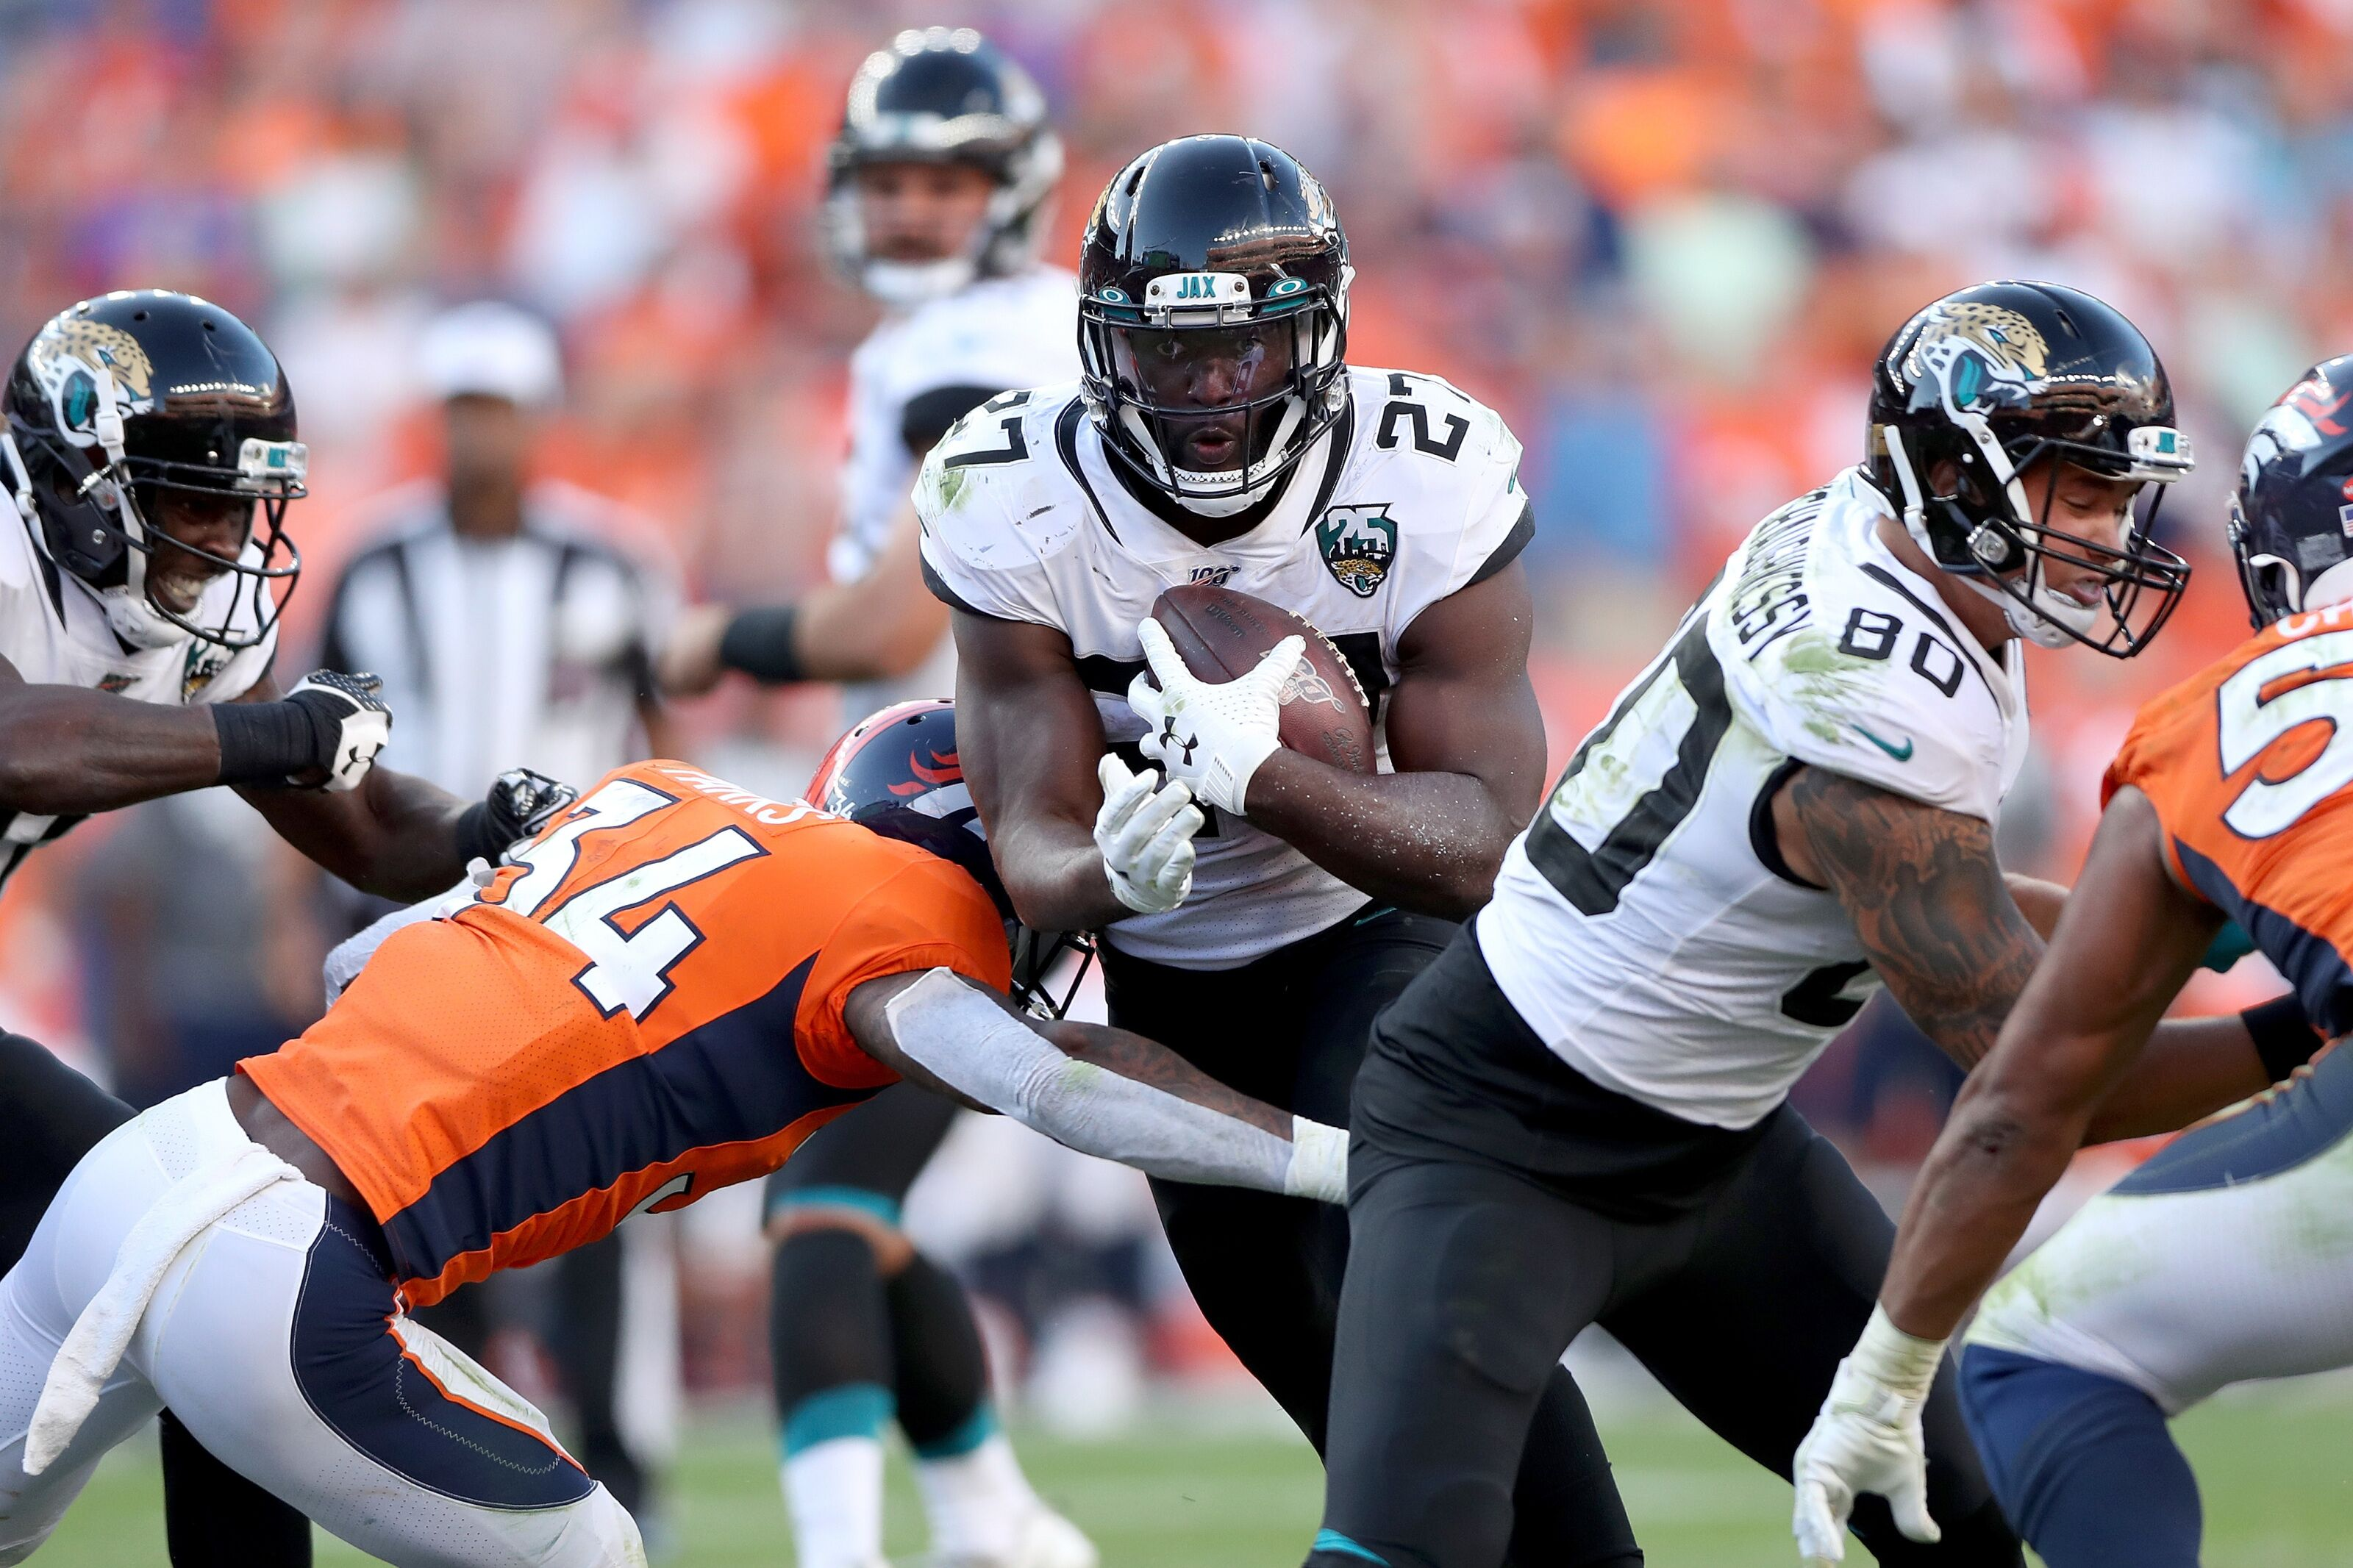 Jacksonville Jaguars: Pete Prisco ranks the team 27th in recent poll